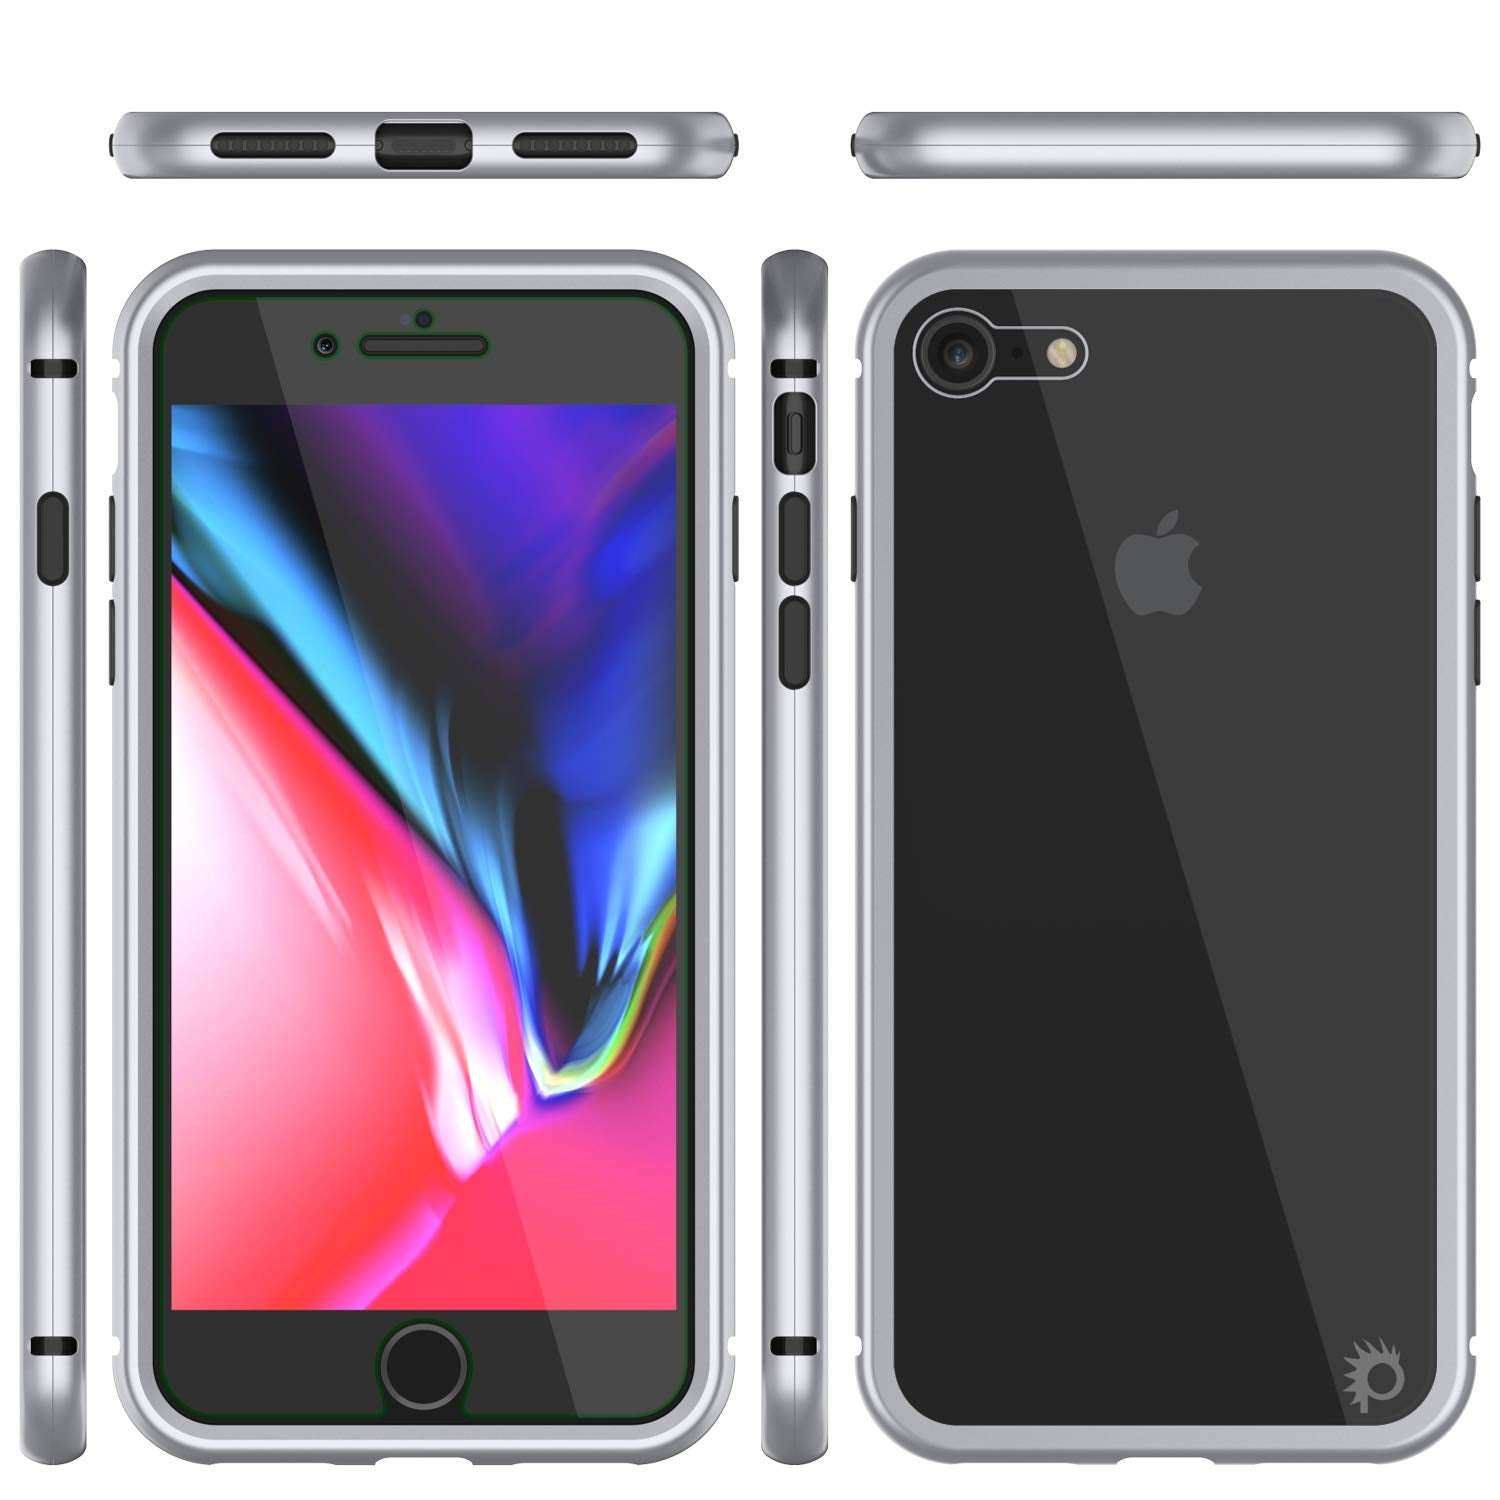 iPhone 7 Case, Punkcase Magnetix 2.0 Protective TPU Cover W/ Tempered Glass Screen Protector [Silver]